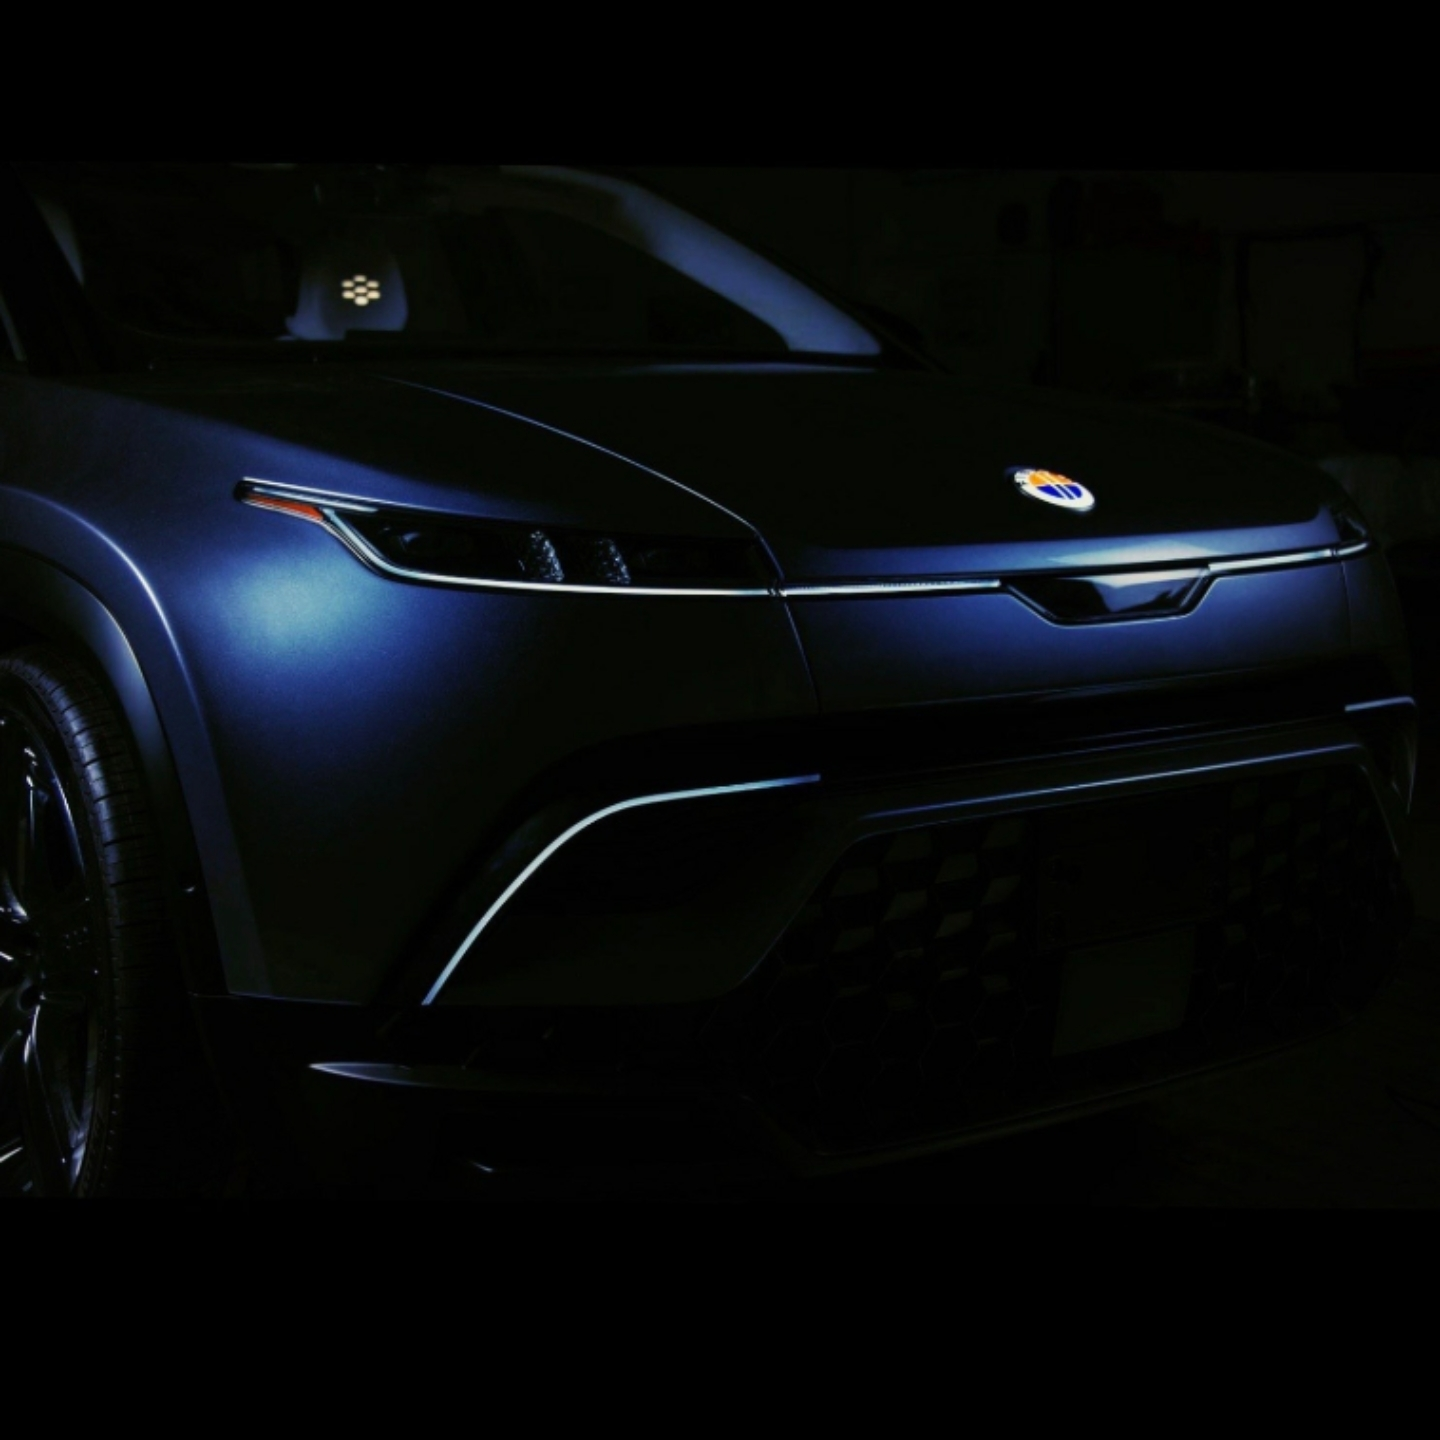 Fisker, SUV, ces, all-electric, automotive news, automotive trends, 360 MAGAZINE